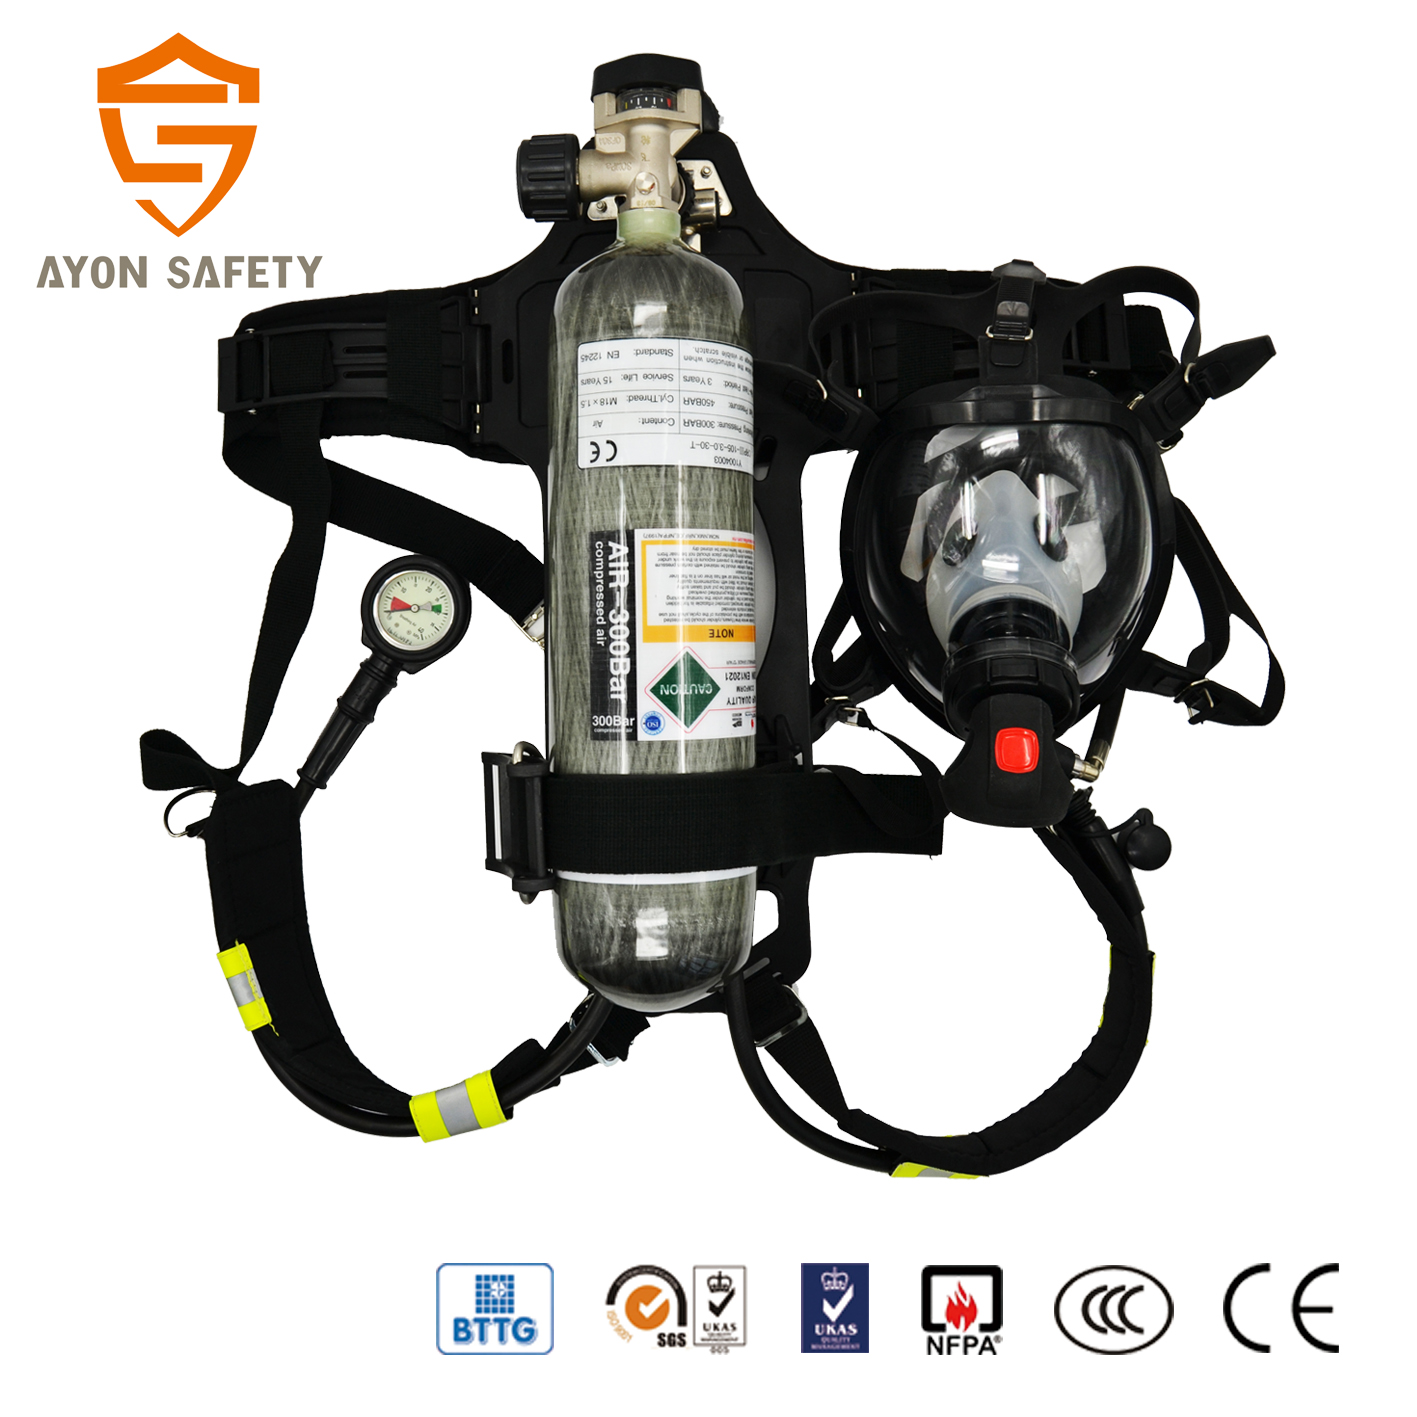 hight resolution of self contained breathing apparatus scba rhzkf 6 8 30 positive pressure air respirator ayonsafety